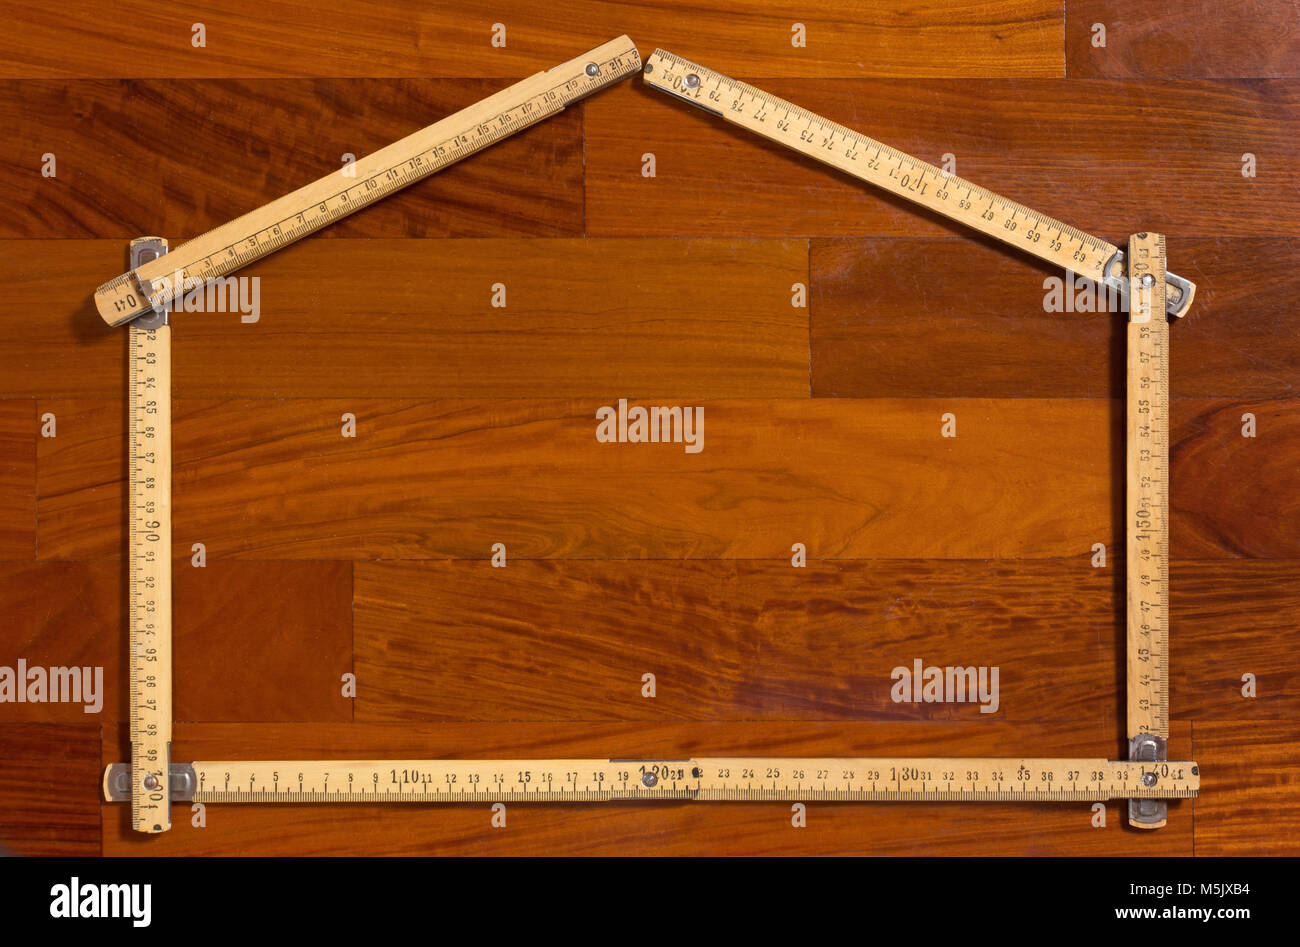 Measuring stick folded in the shape of a house on a wooden background - Stock Image